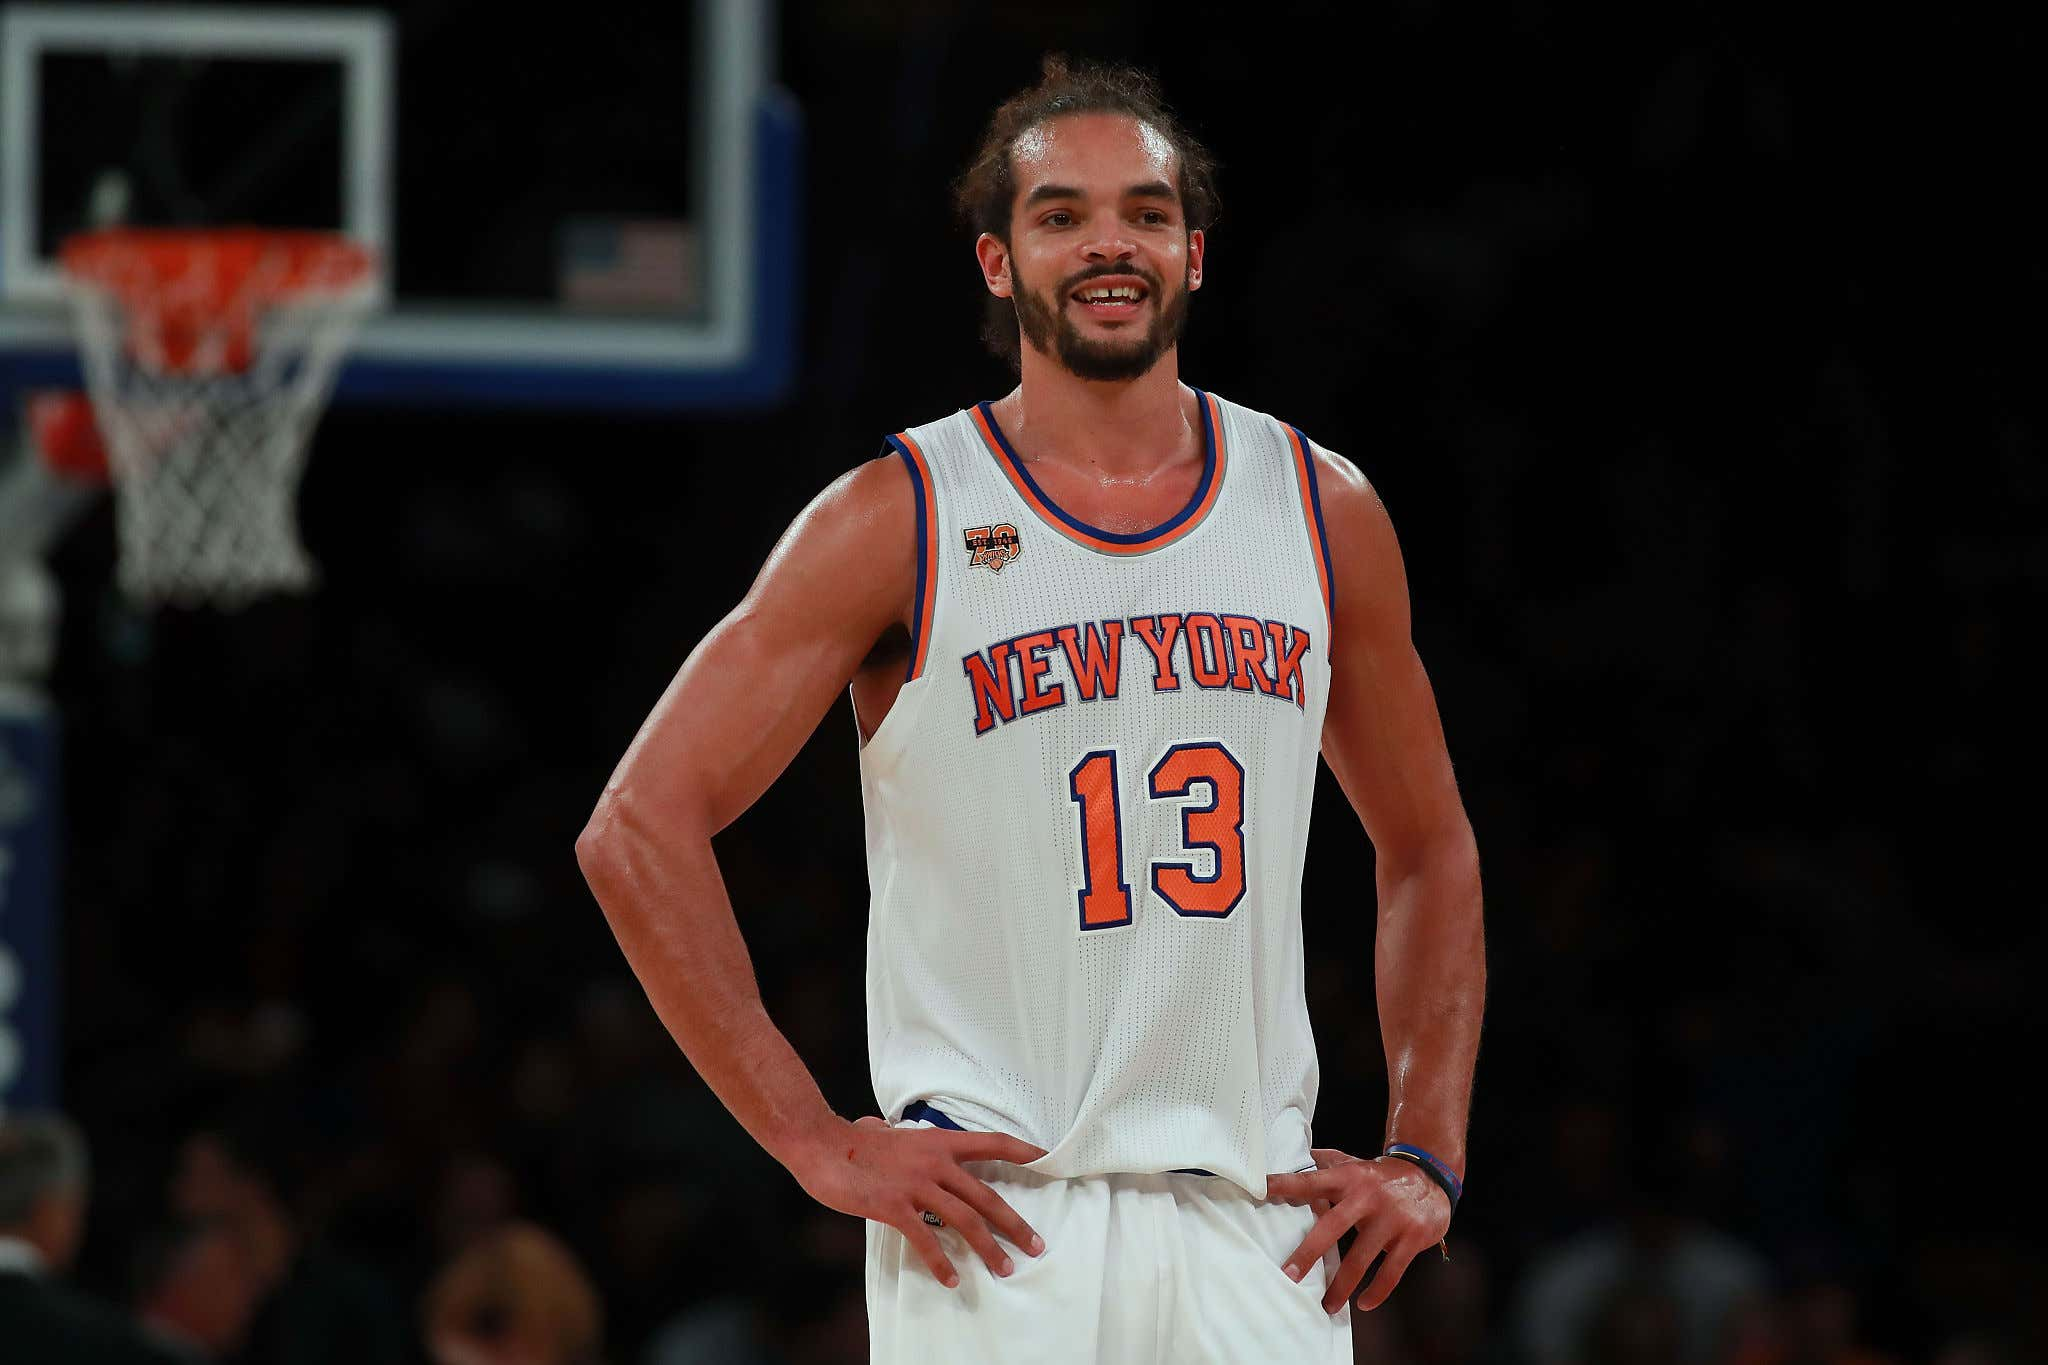 NEW YORK, NY - OCTOBER 15:  Joakim Noah #13 of the New York Knicks looks on against the Boston Celtics during their preseason game at Madison Square Garden on October 15, 2016 in New York City. NOTE TO USER: User expressly acknowledges and agrees that, by downloading and or using this photograph, User is consenting to the terms and conditions of the Getty Images License Agreement.  (Photo by Michael Reaves/Getty Images)